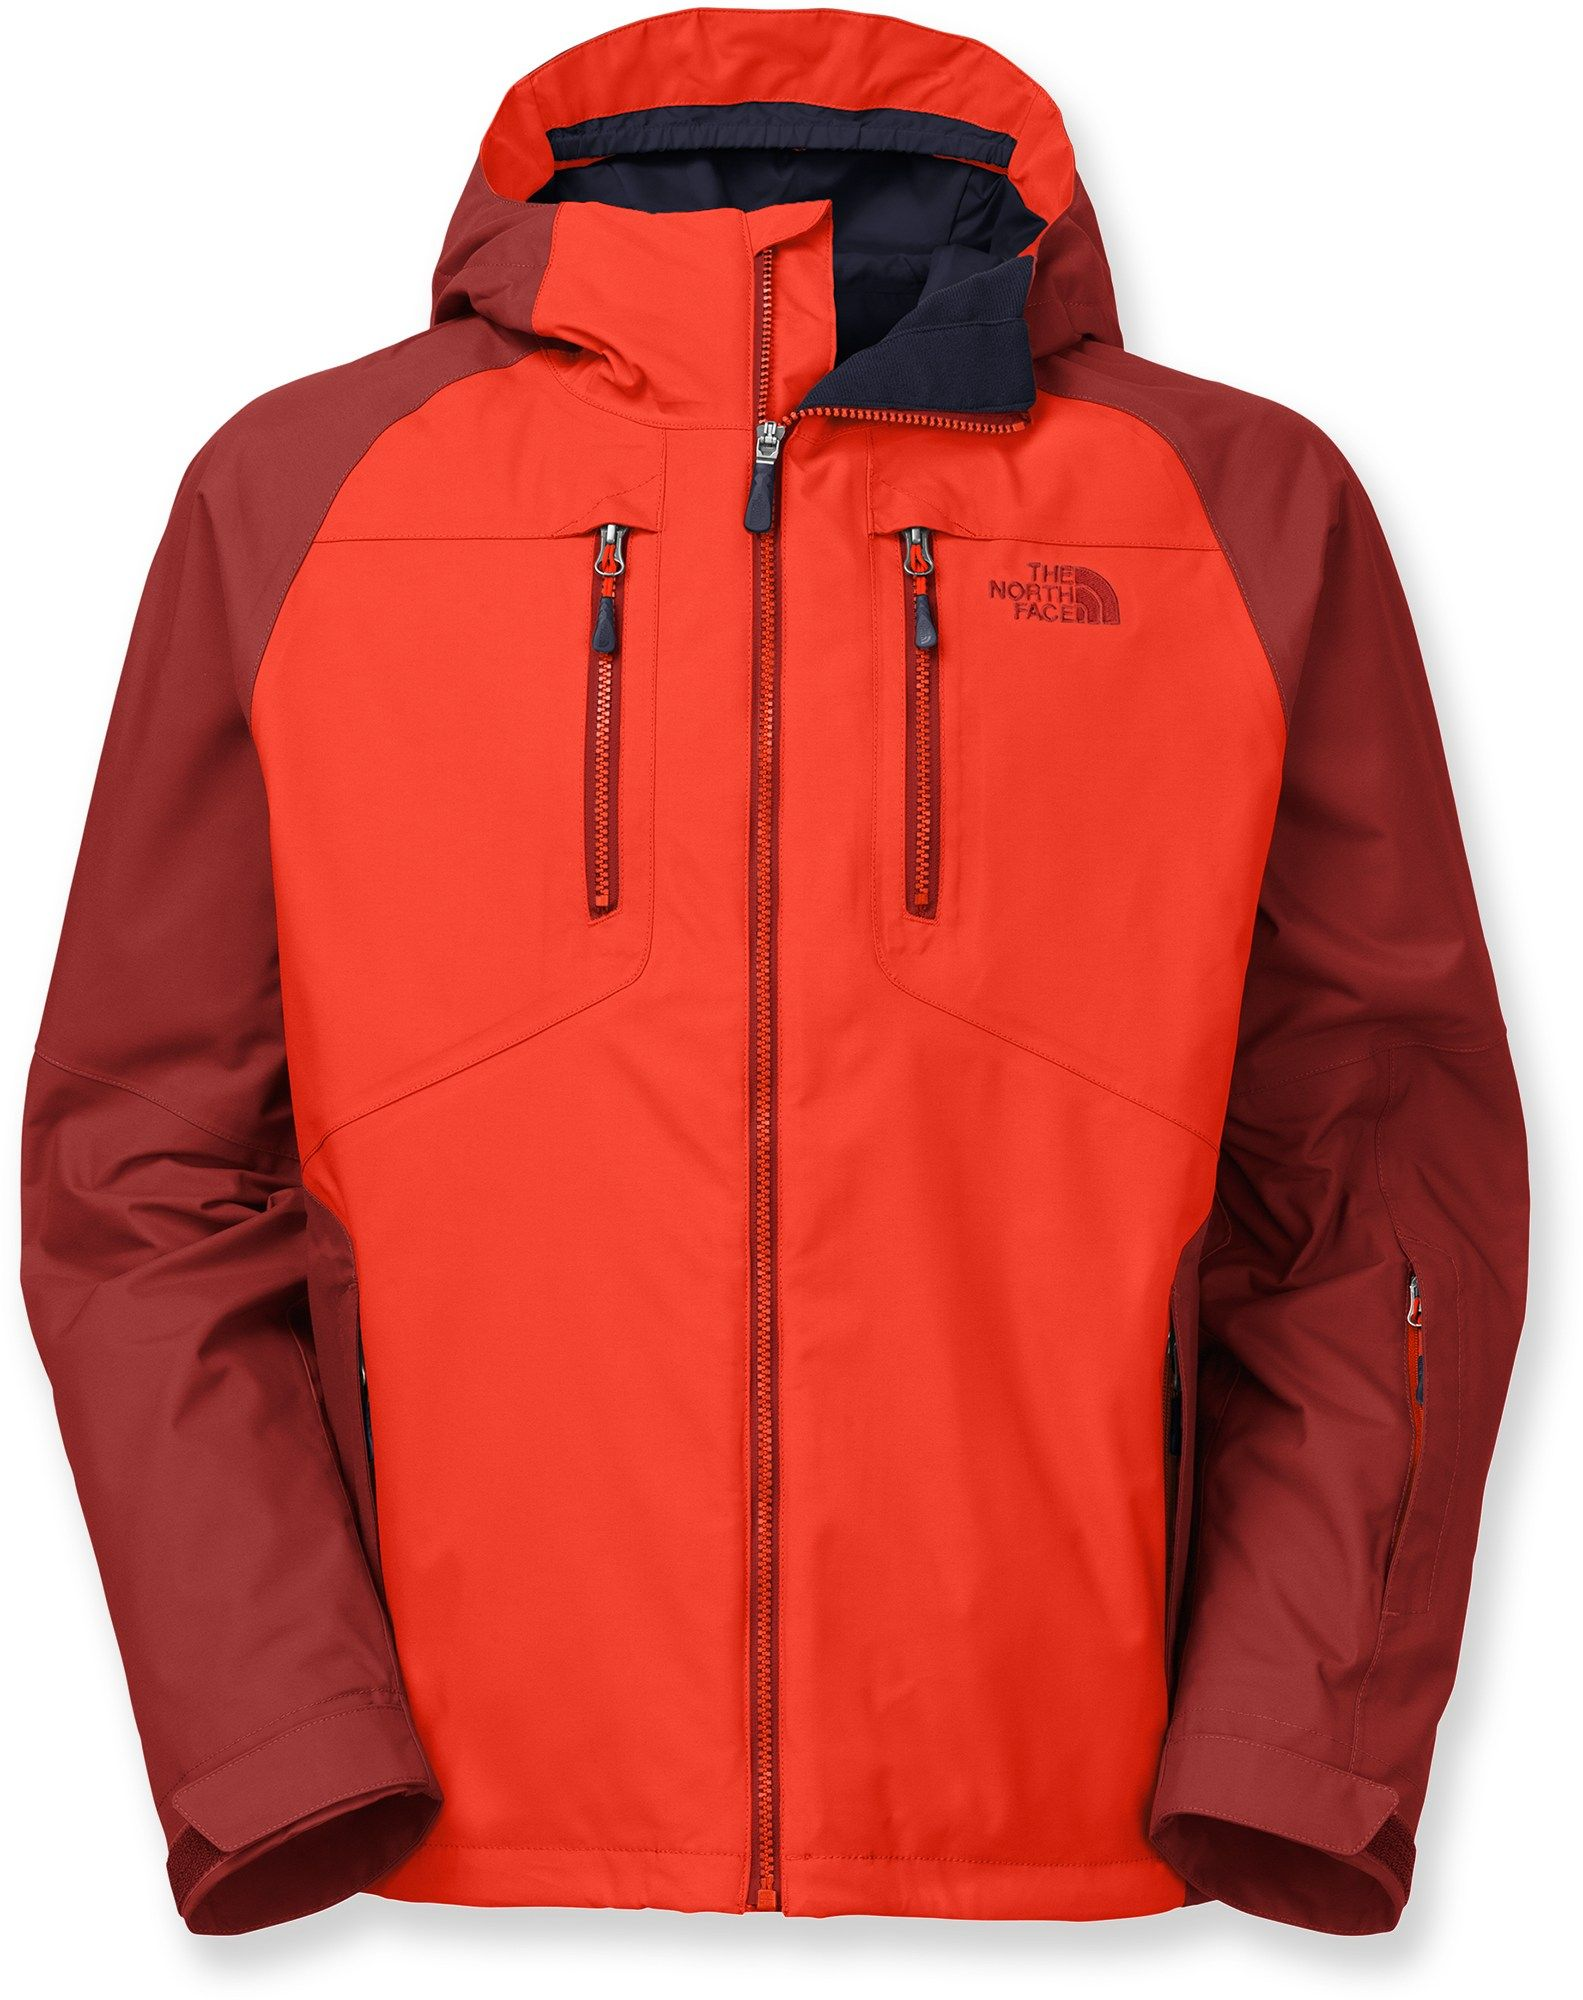 29b4c8d955 The North Face Male Sumner Triclimate 3-In-1 Jacket - Men s ...